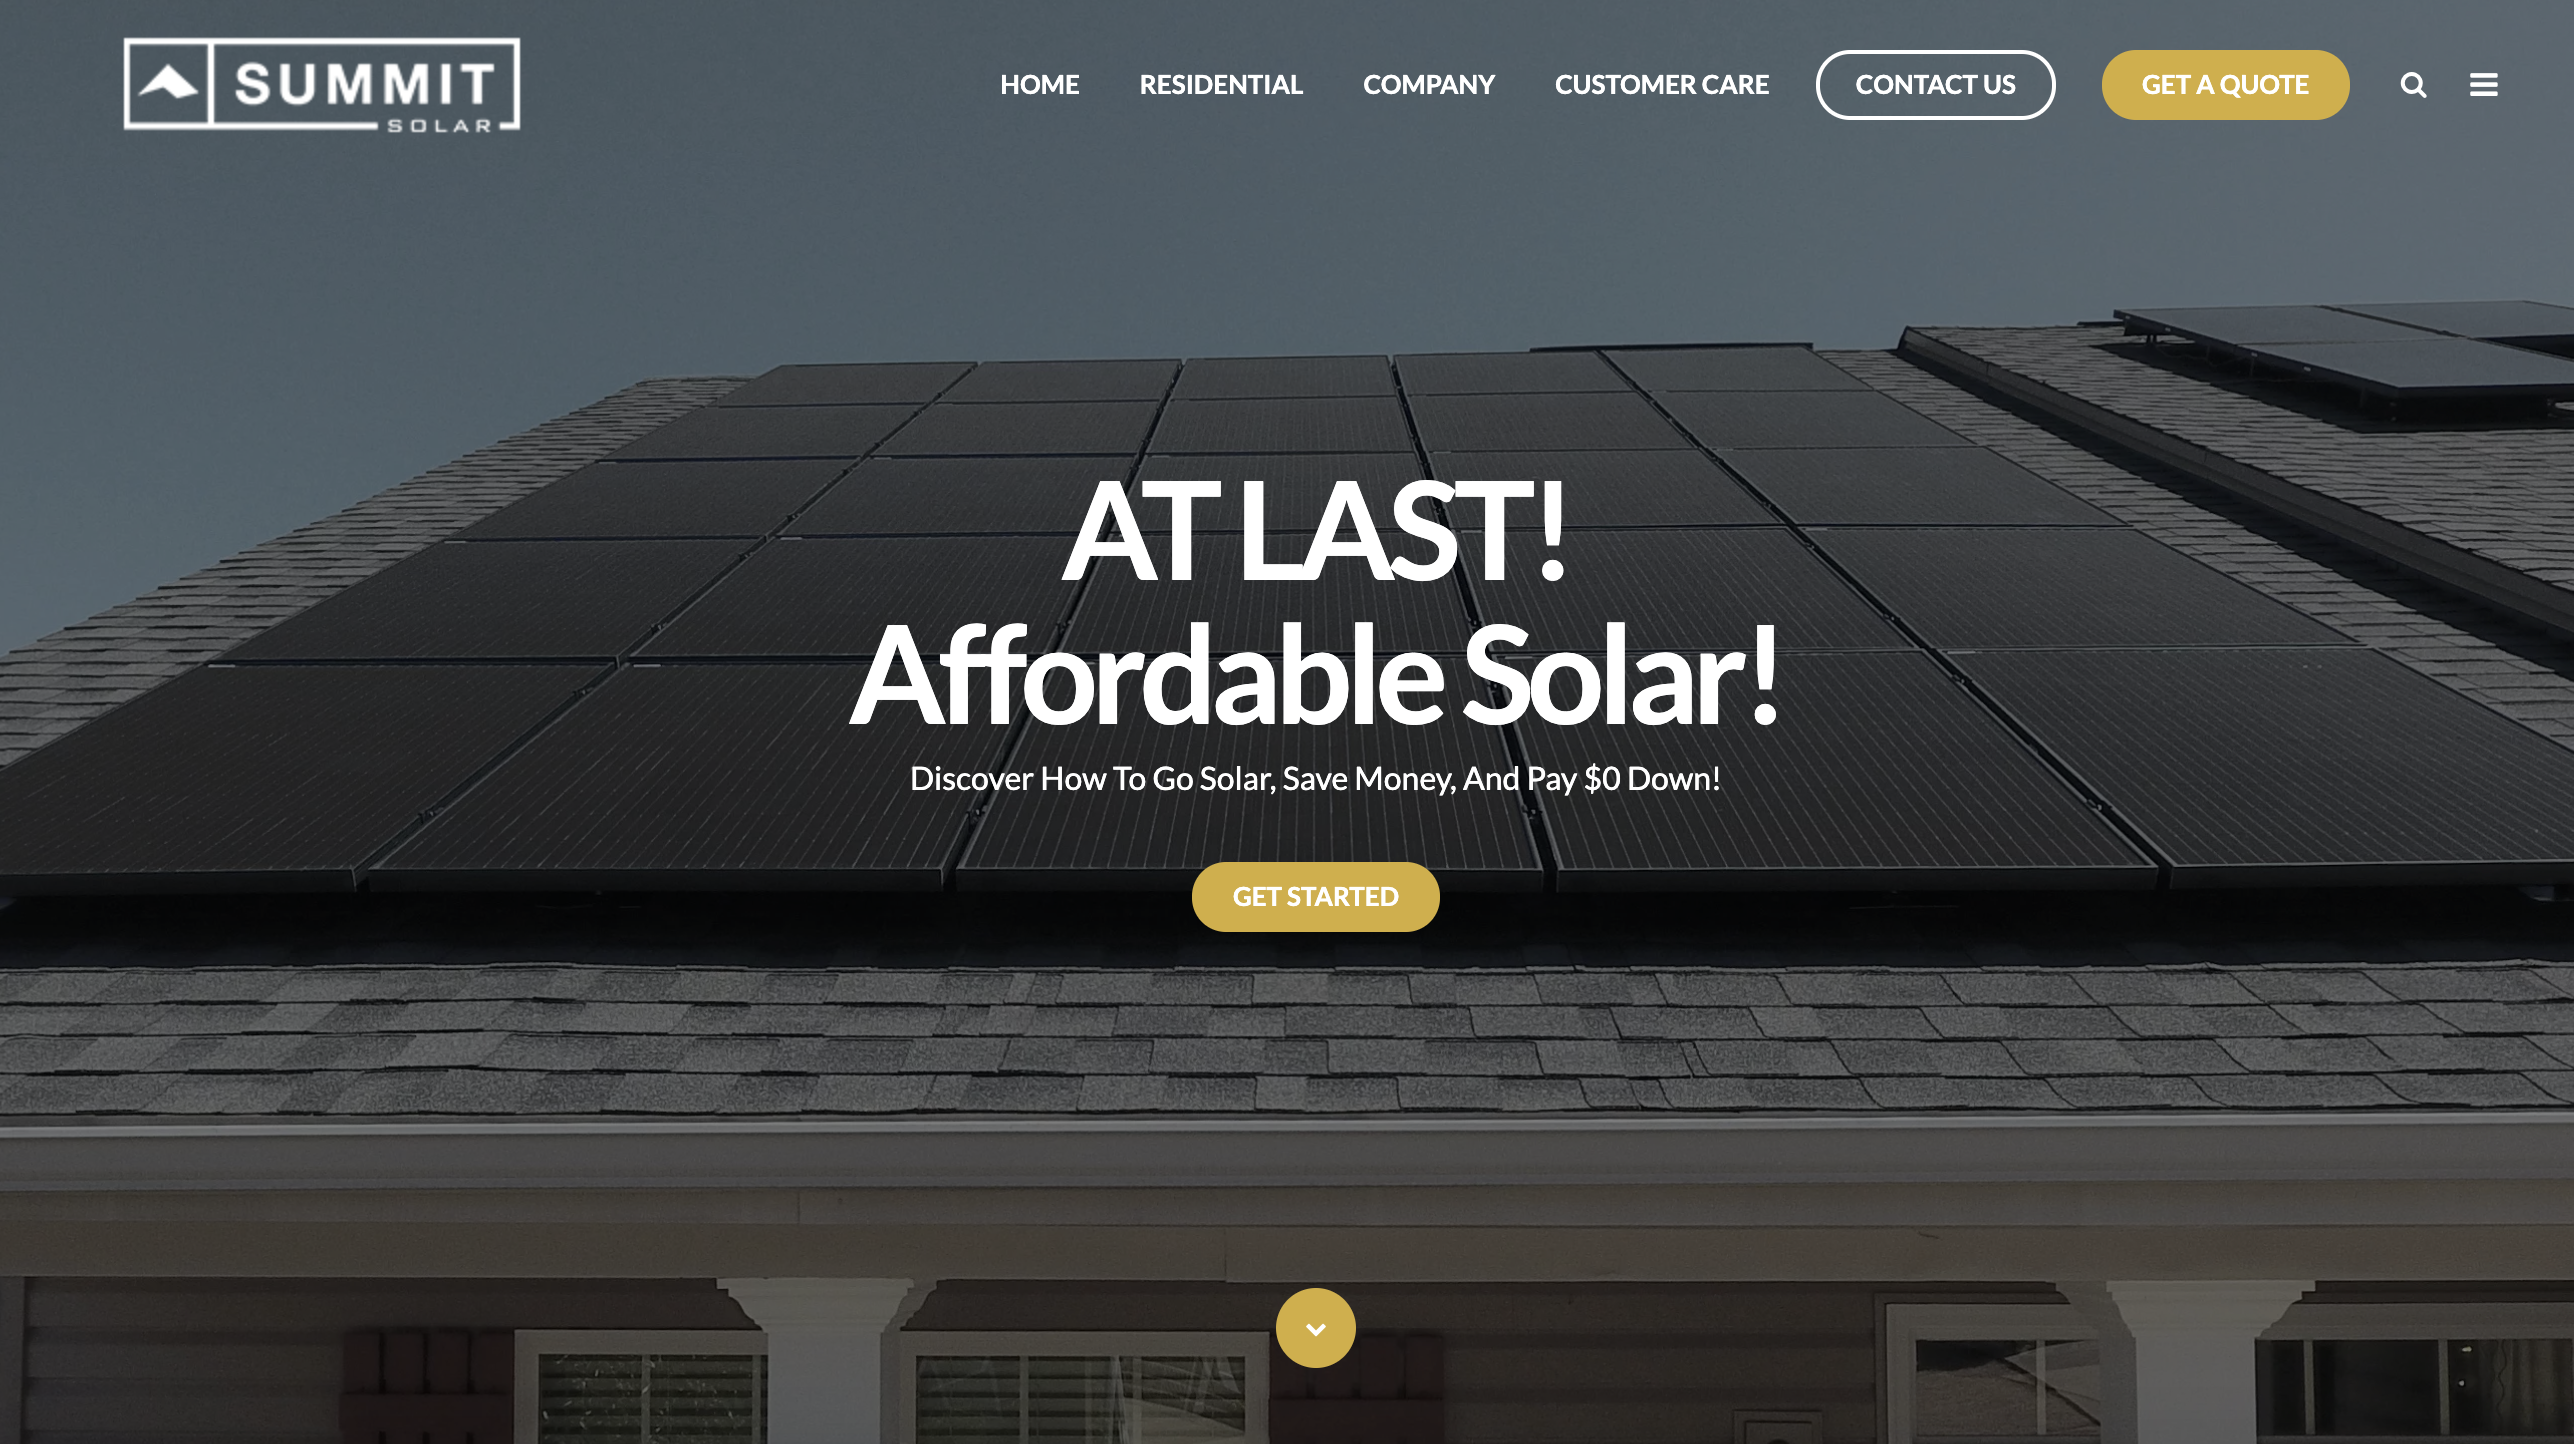 summit-solar-website-redesign-screenshot-1